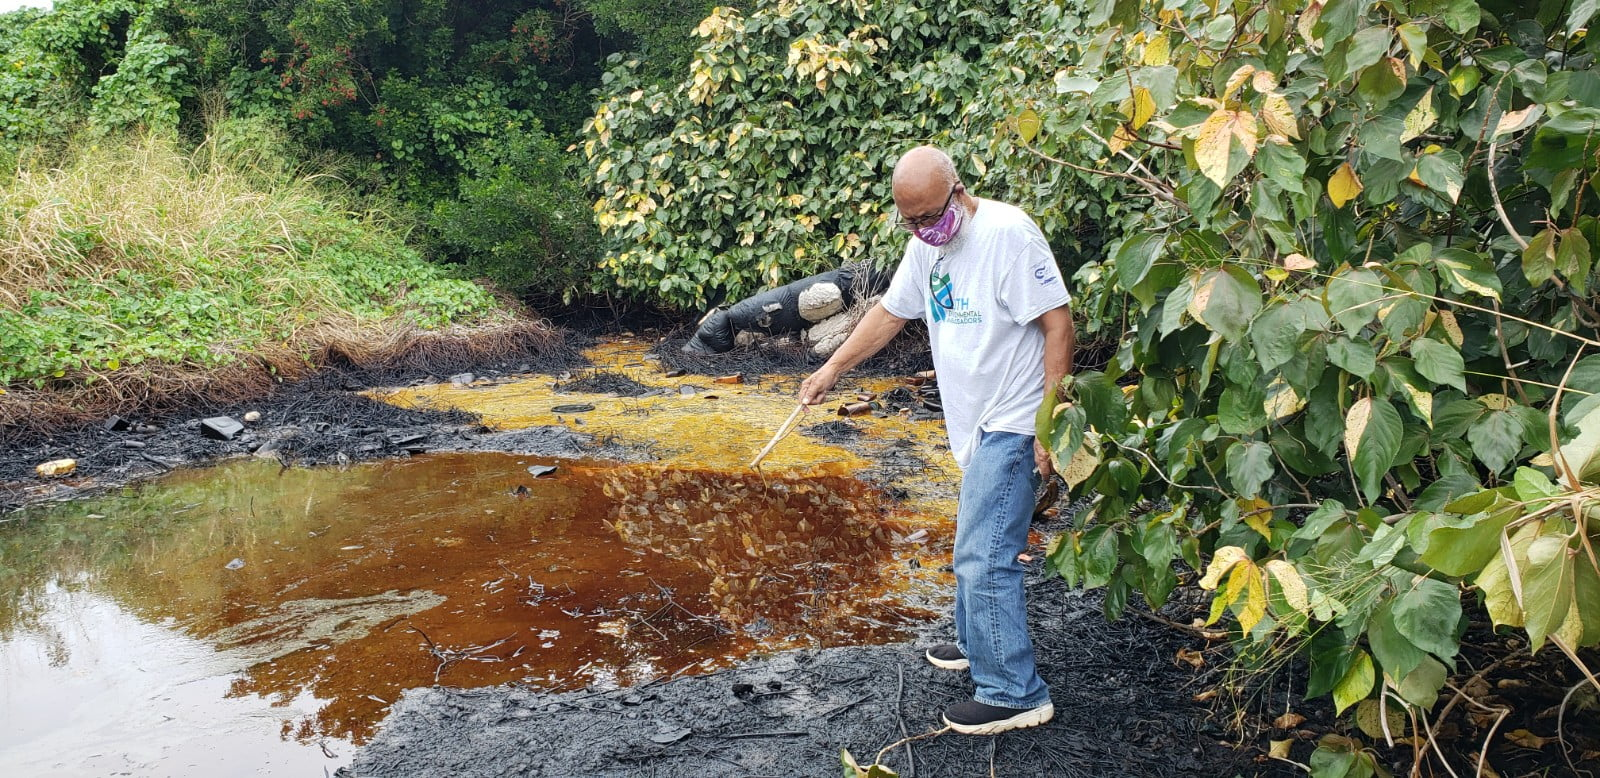 """Environmentalist condemns oil dumping as """"absolutely despicable"""""""